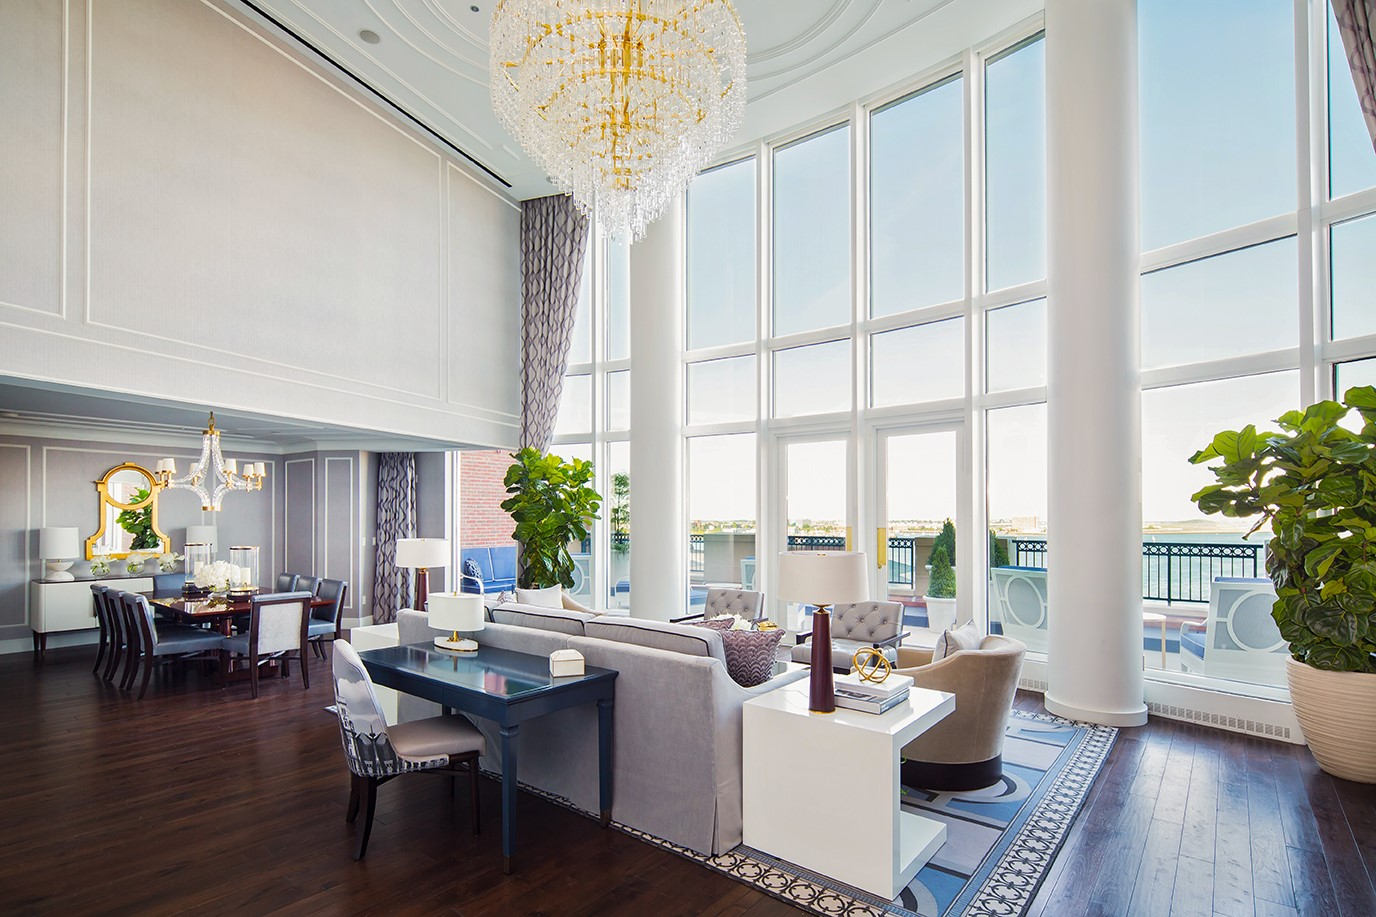 All The President's Suites